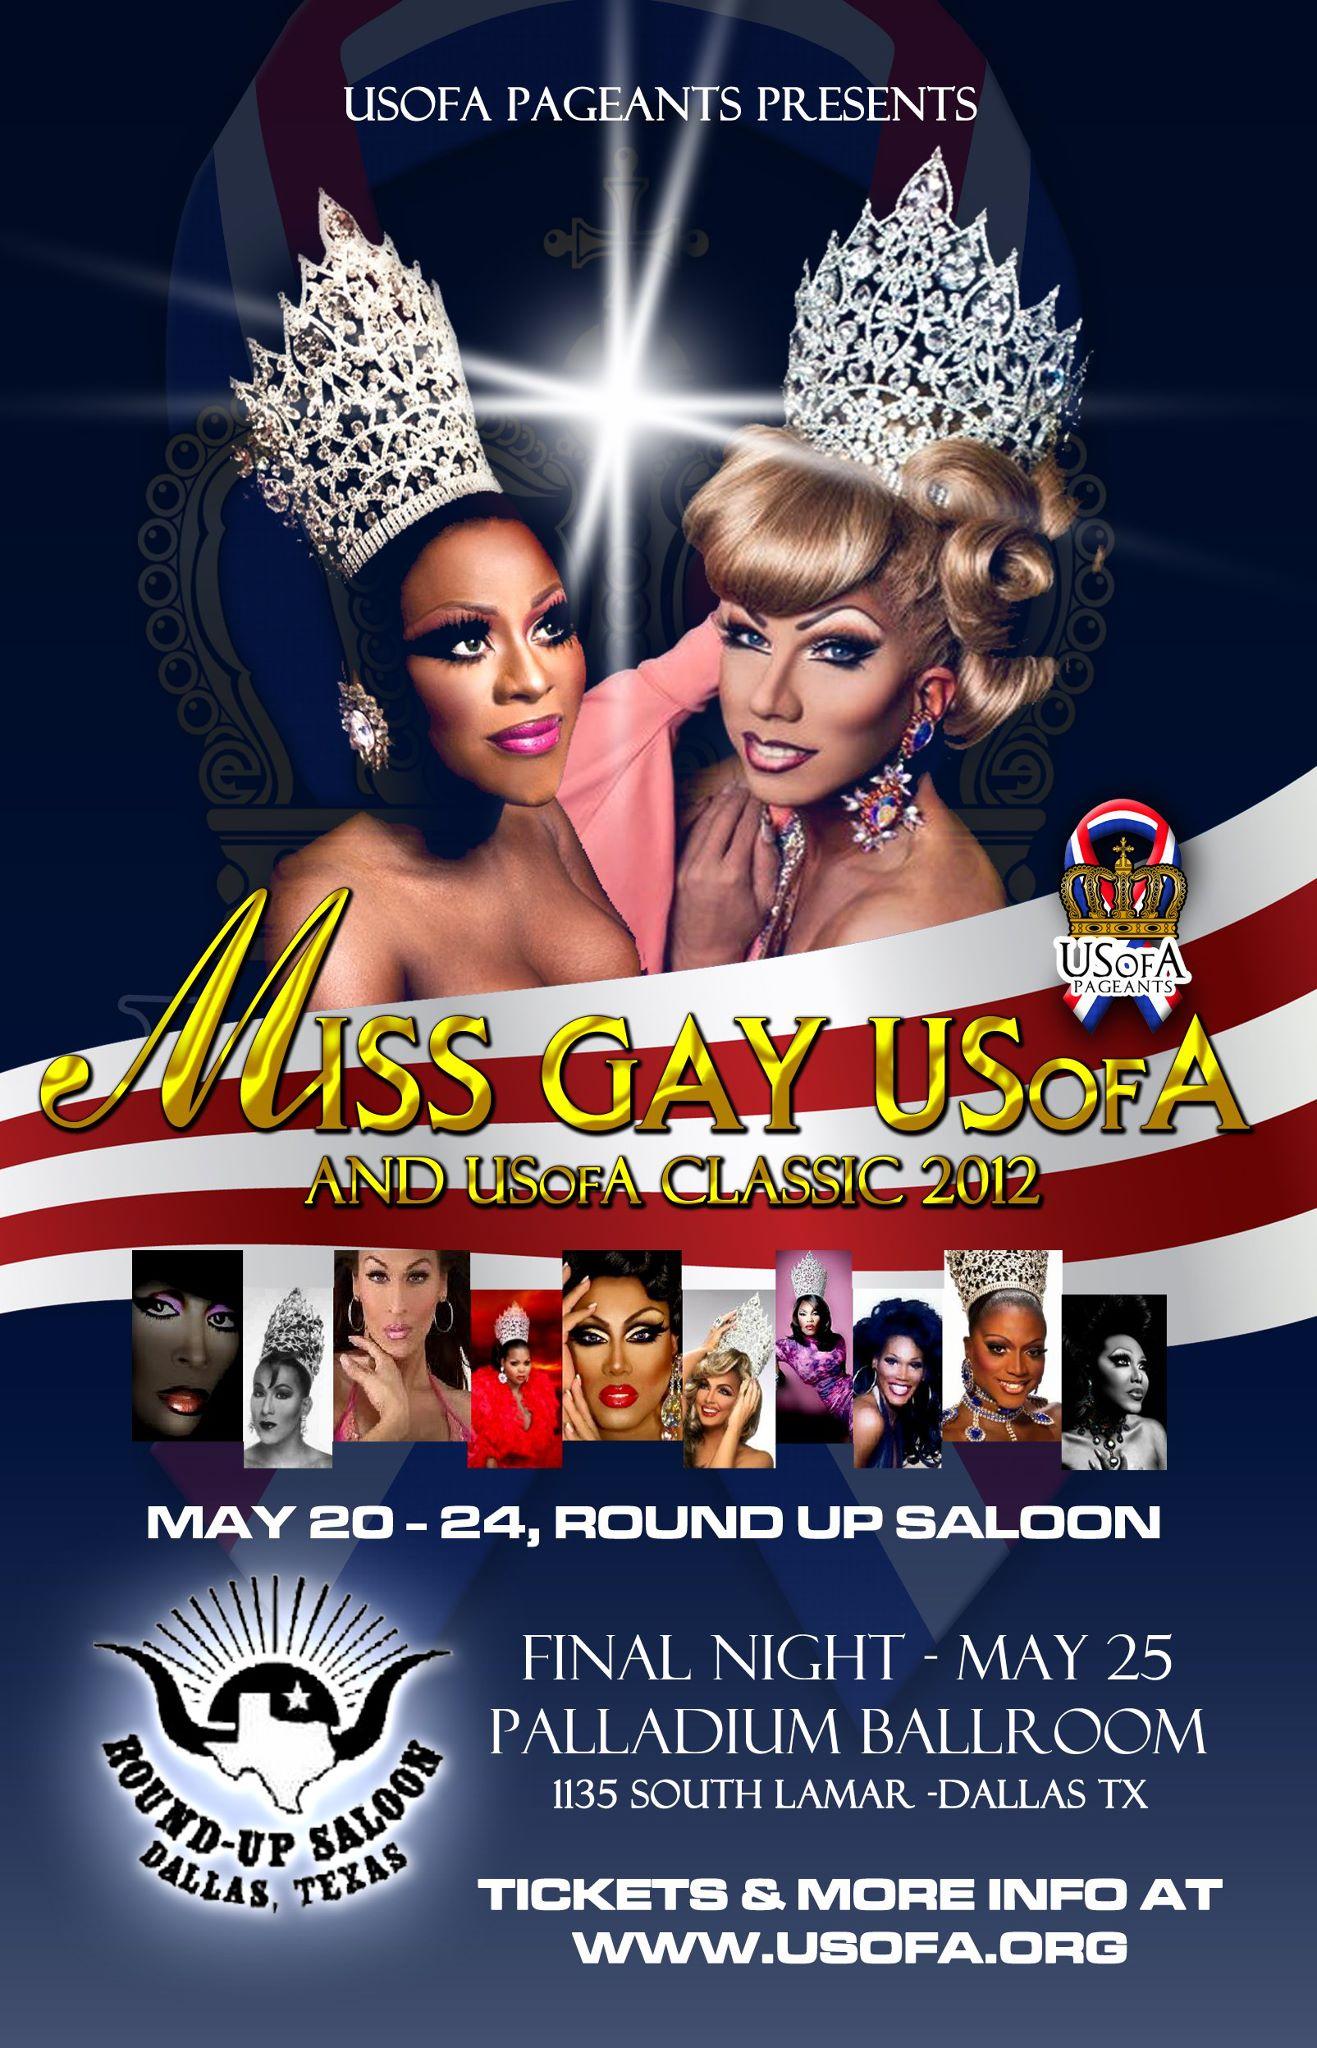 Show Ad | Miss Gay USofA and Miss Gay USofA Classic | Round Up Saloon (Dallas, Texas) | 5/20-5/25/2012